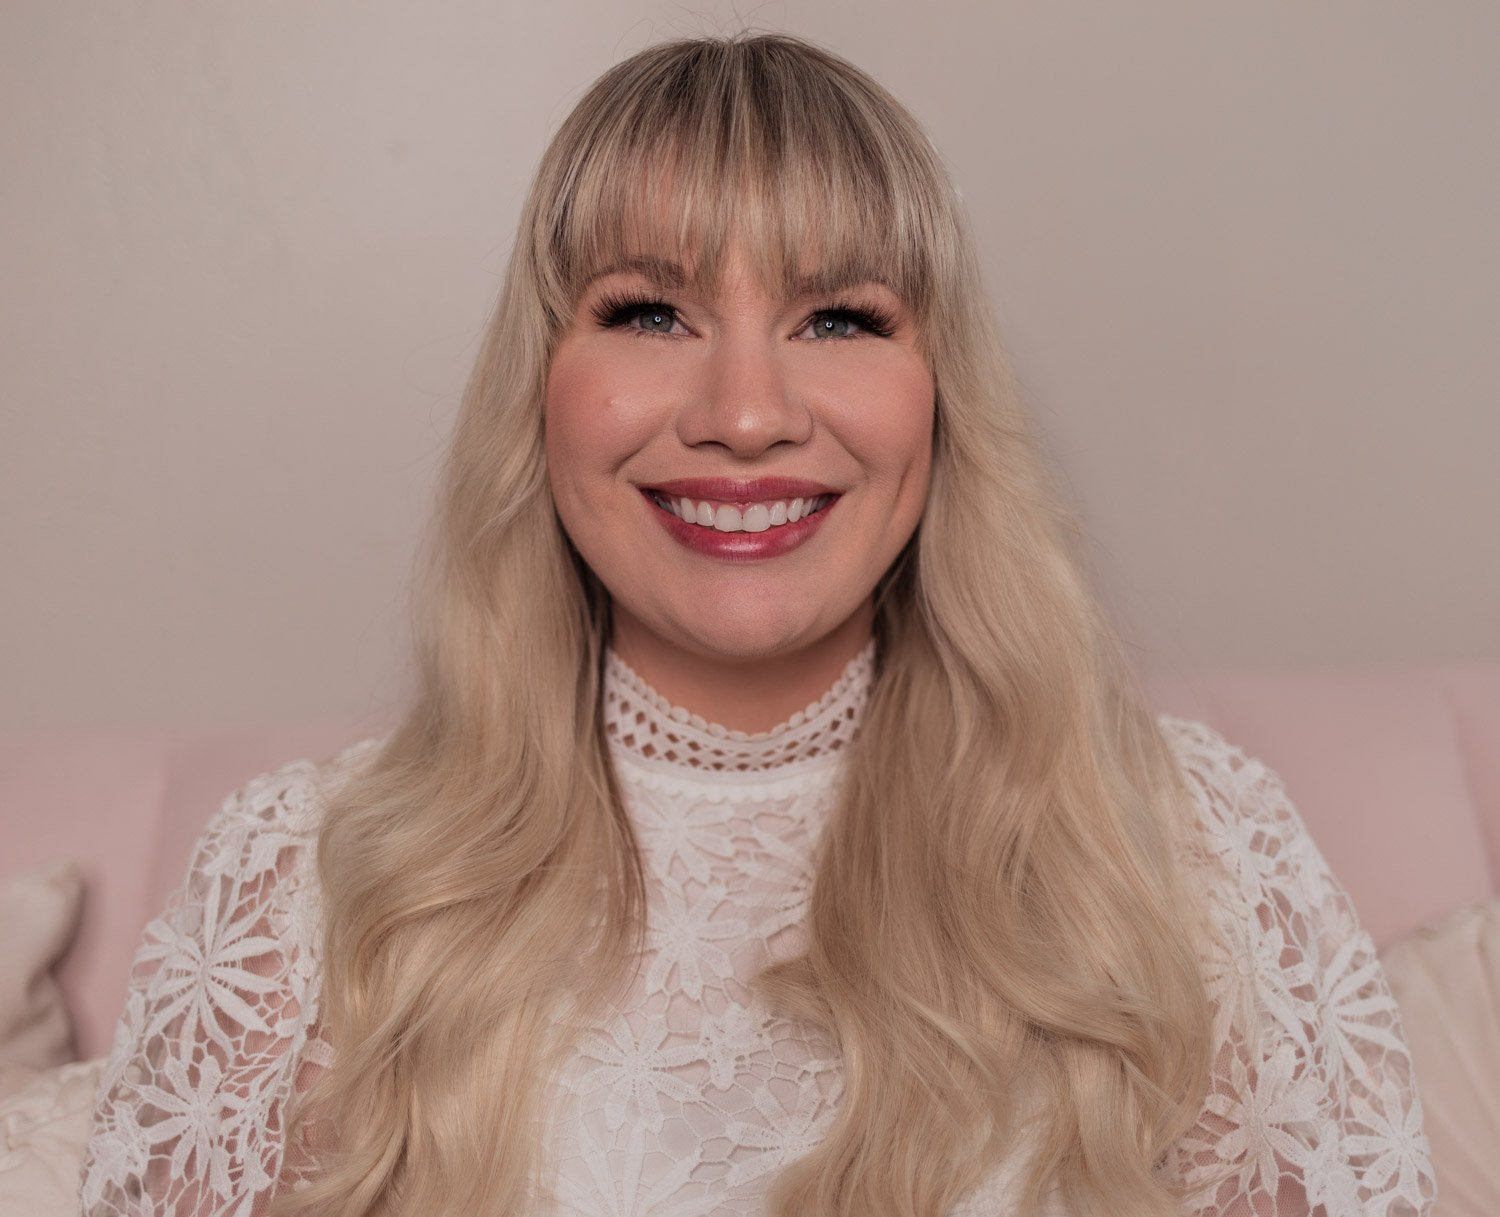 Feminine fashion and beauty blogger Elizabeth Hugen of Lizzie in Lace shares the Charlotte Tilbury Look of Love Collection Review and lipstick swatches including the Tinted Love Santa Euphoria lip and cheek tint